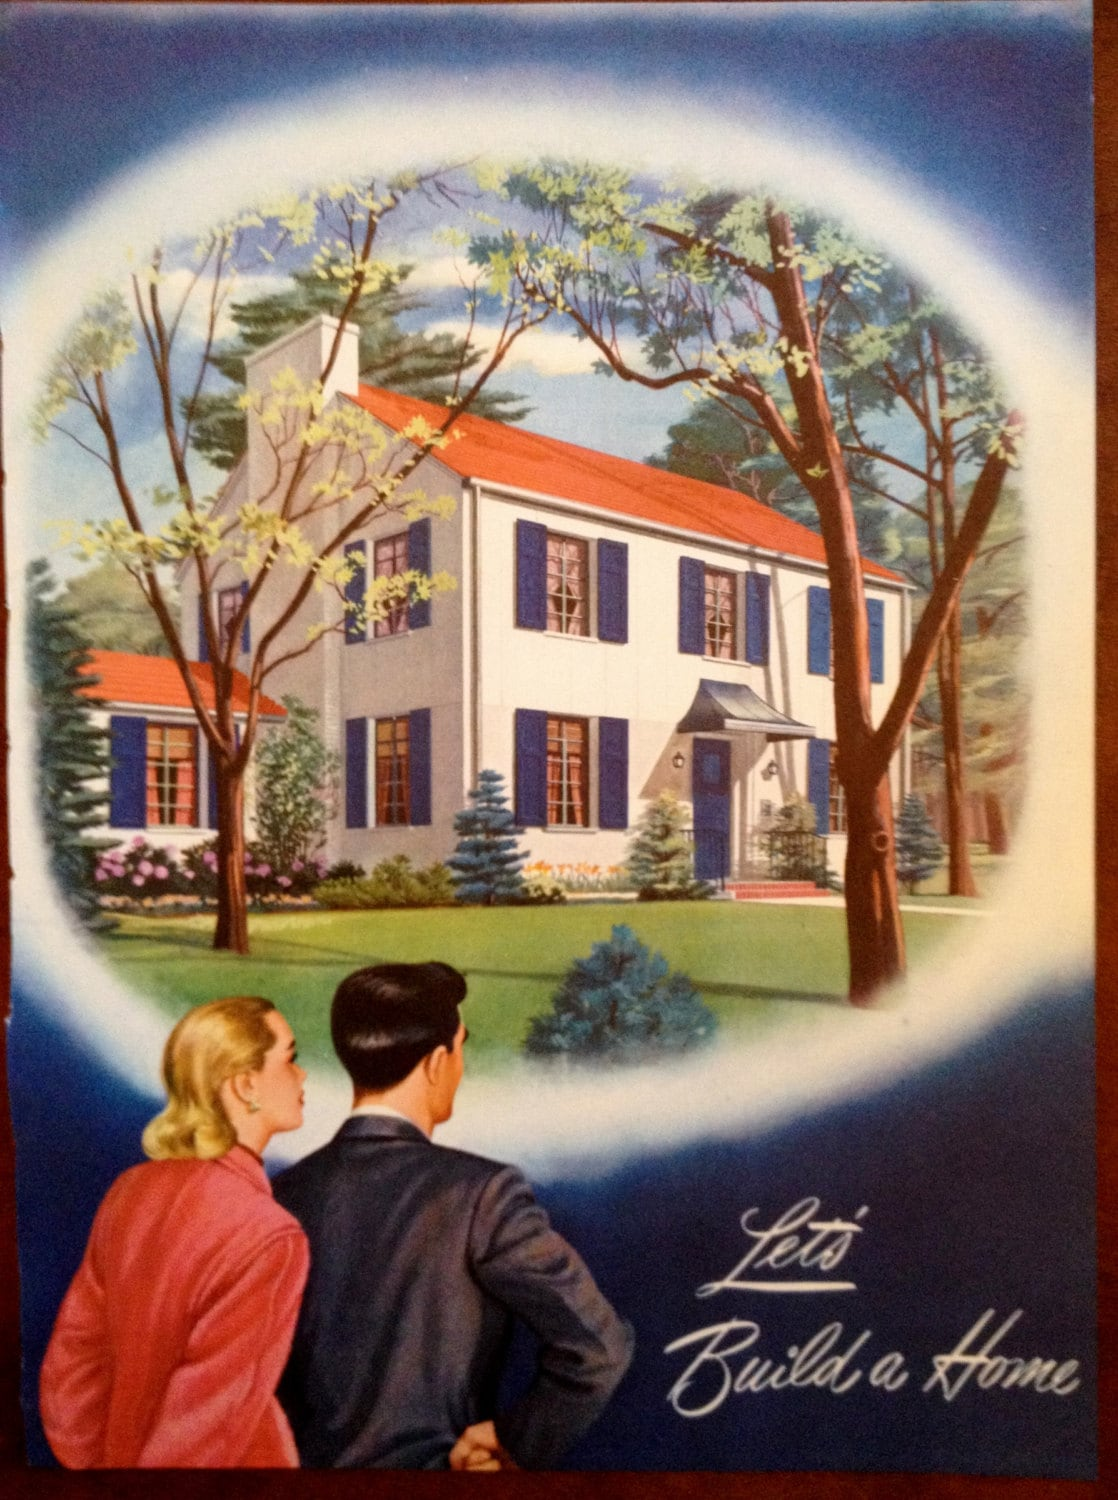 Couple Stand Outside Dream House 1945 Let's Build a Home